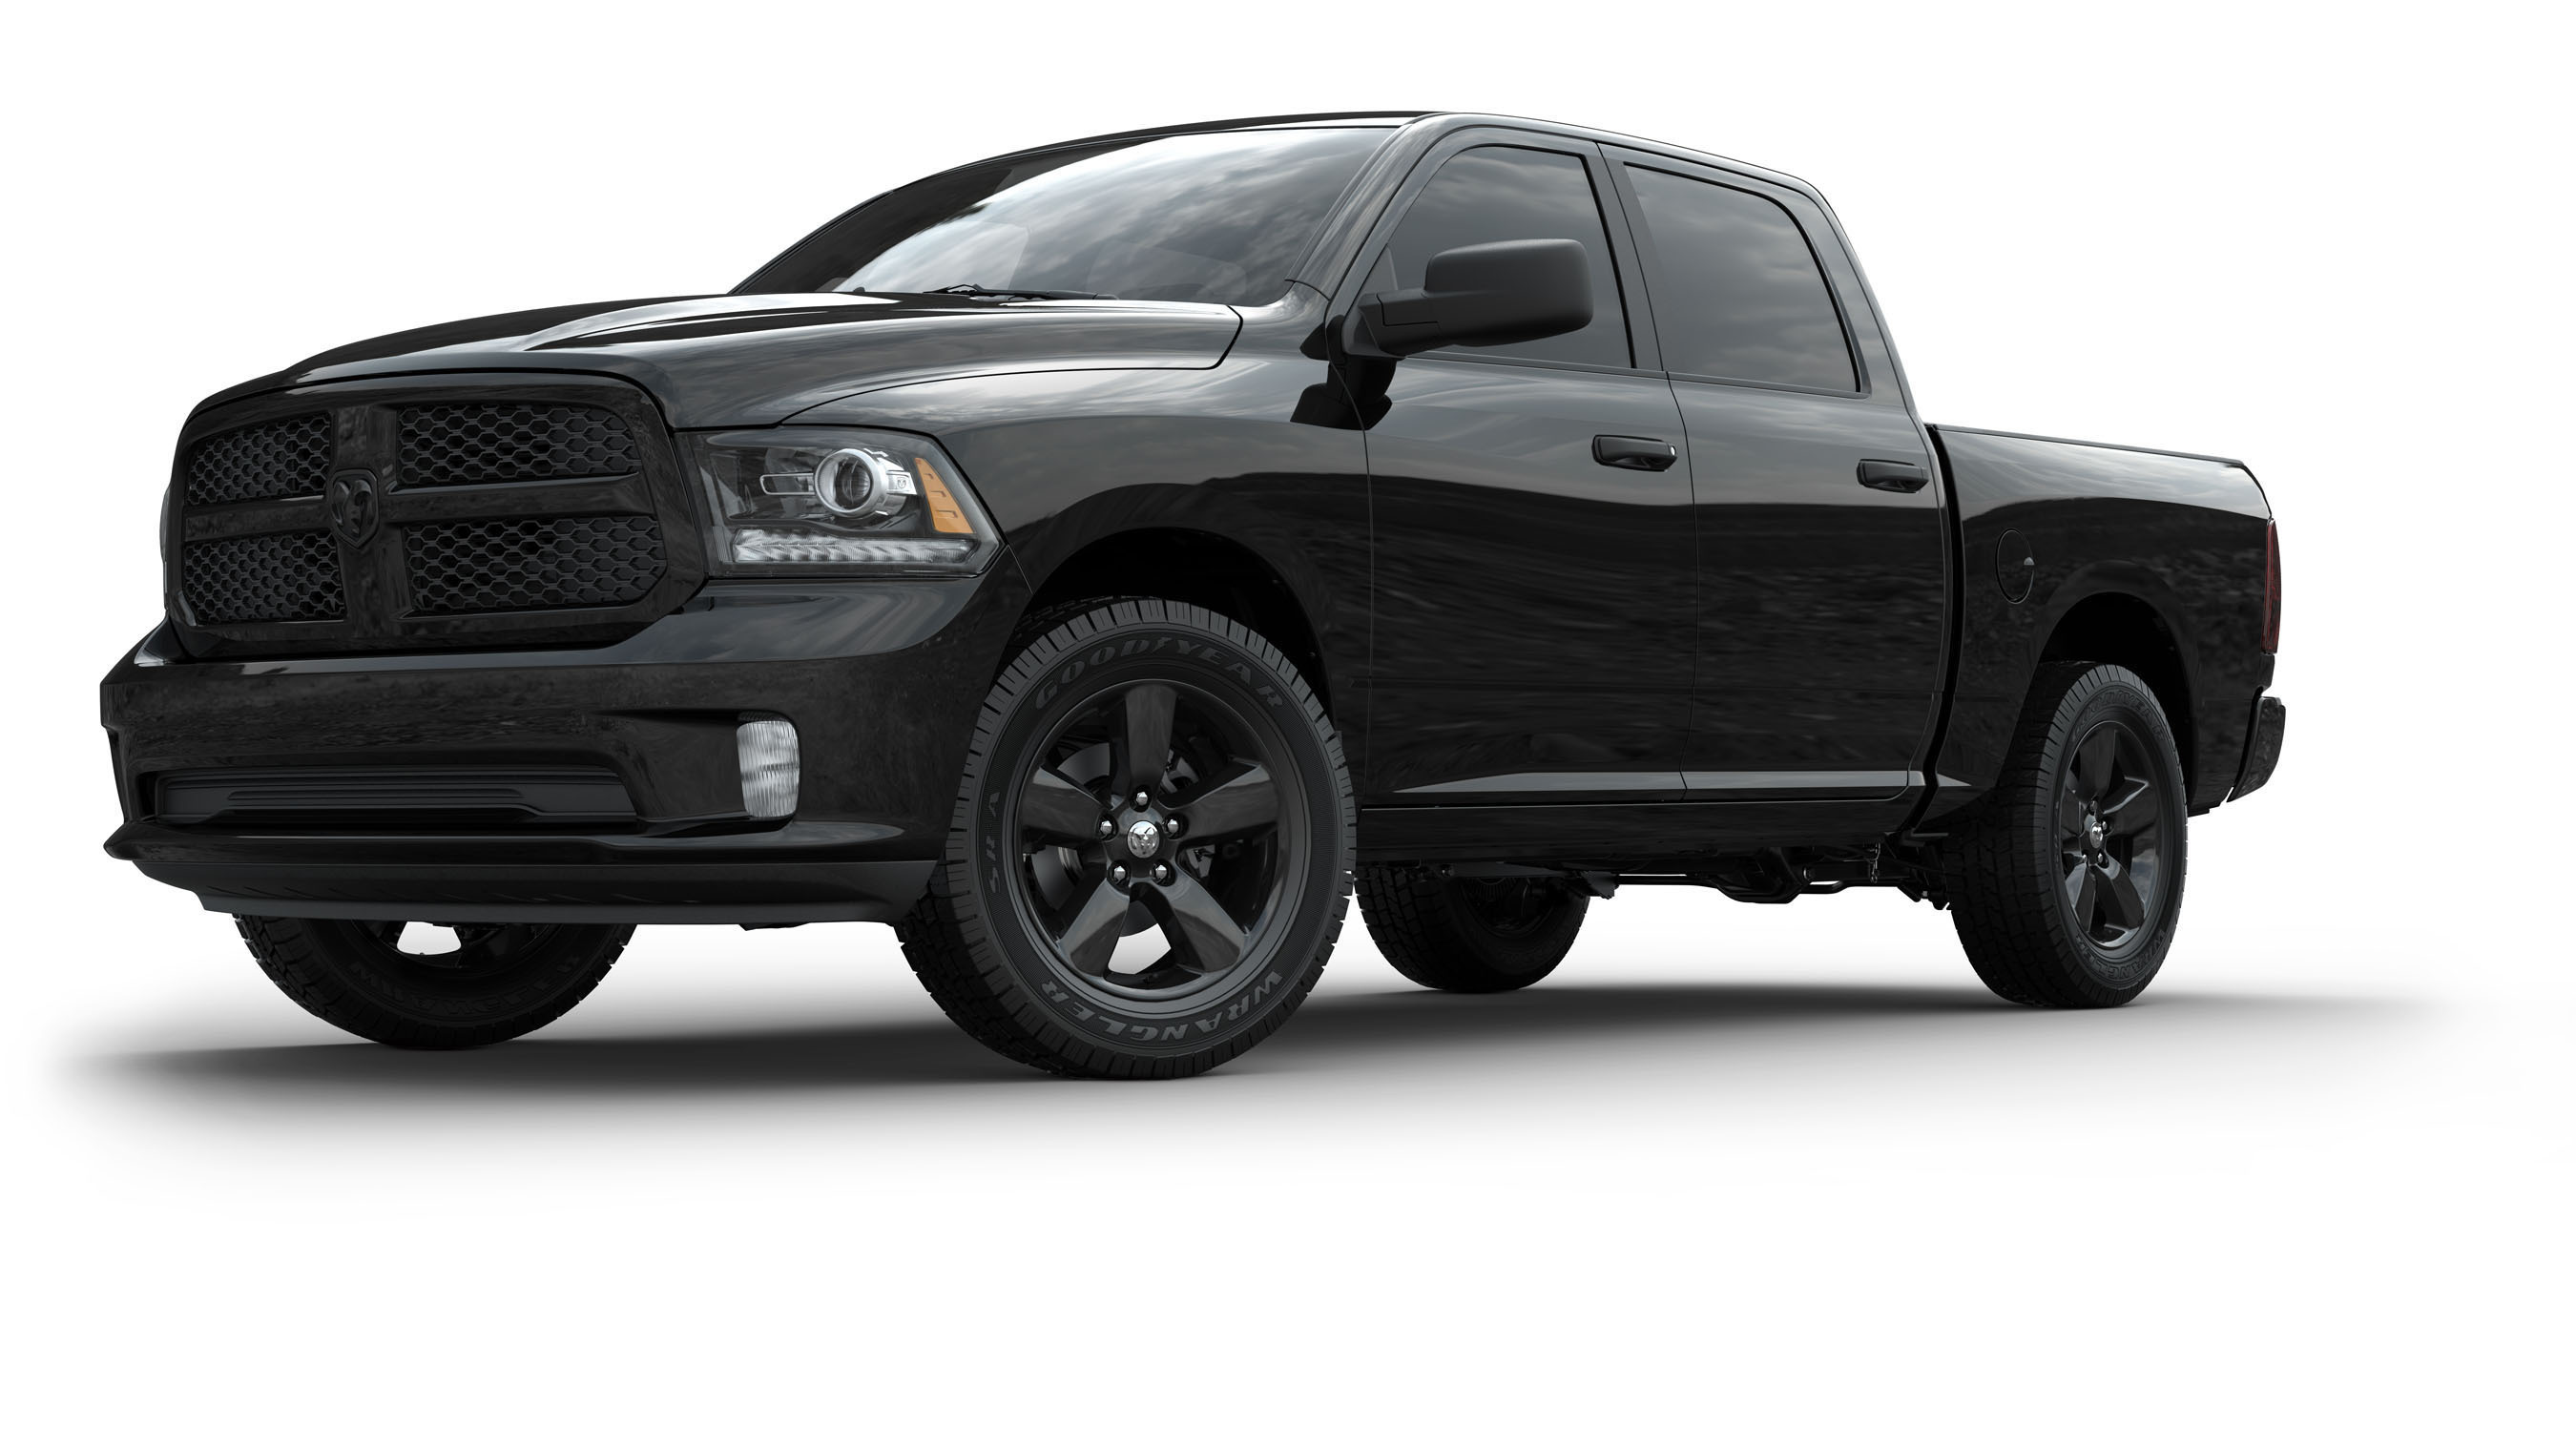 CHRYSLER GROUP LLC RAM BLACK EXPRESS